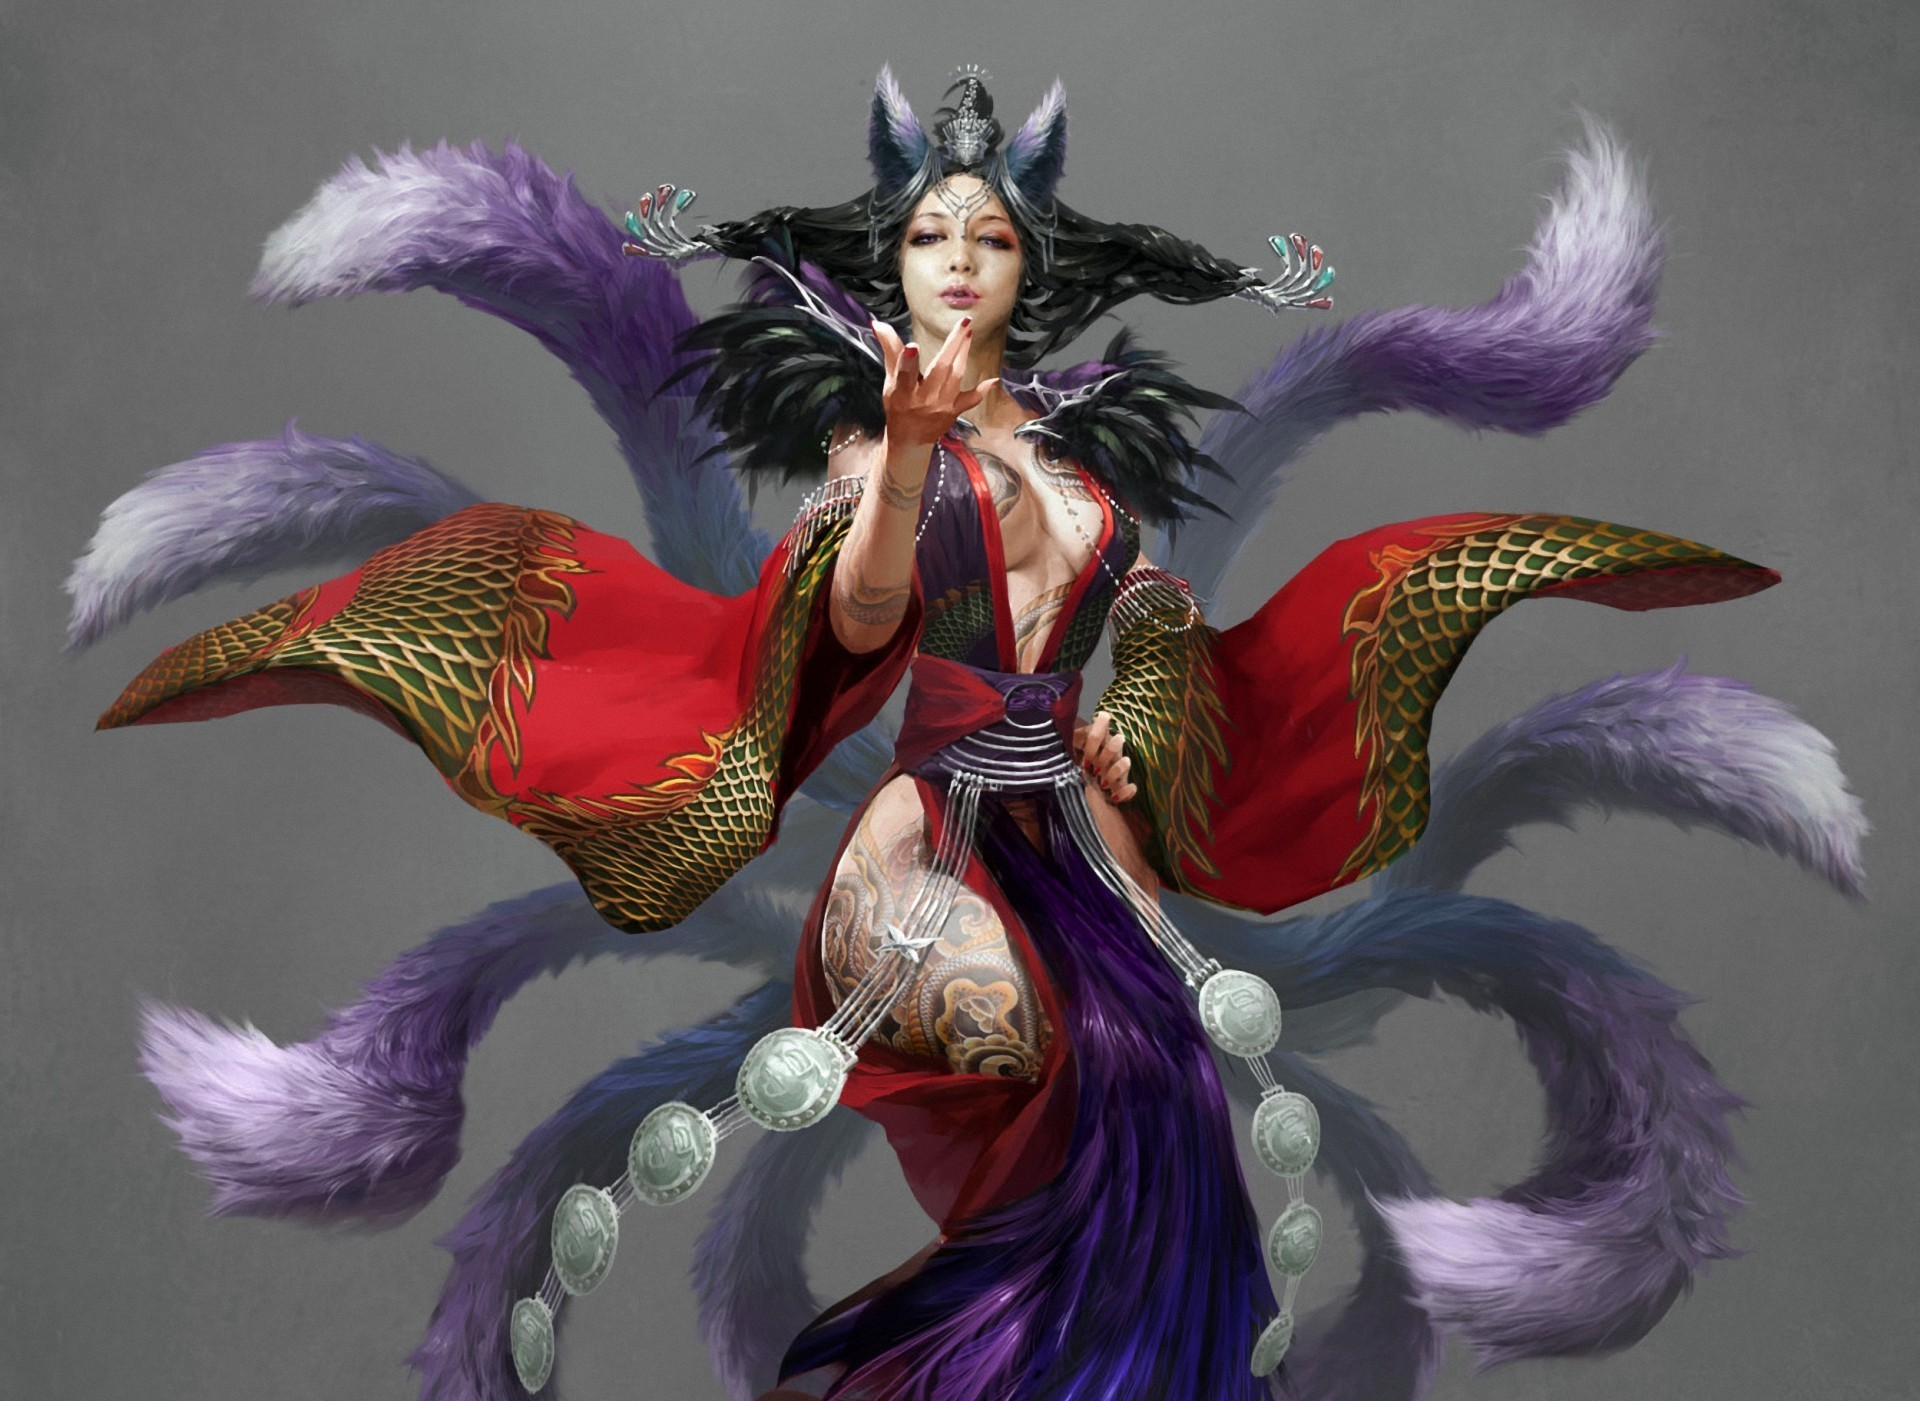 1920x1401 digital-painting-ahri-nine-tailed-fox-hauntingly-league-of-legends hd  wallpaper